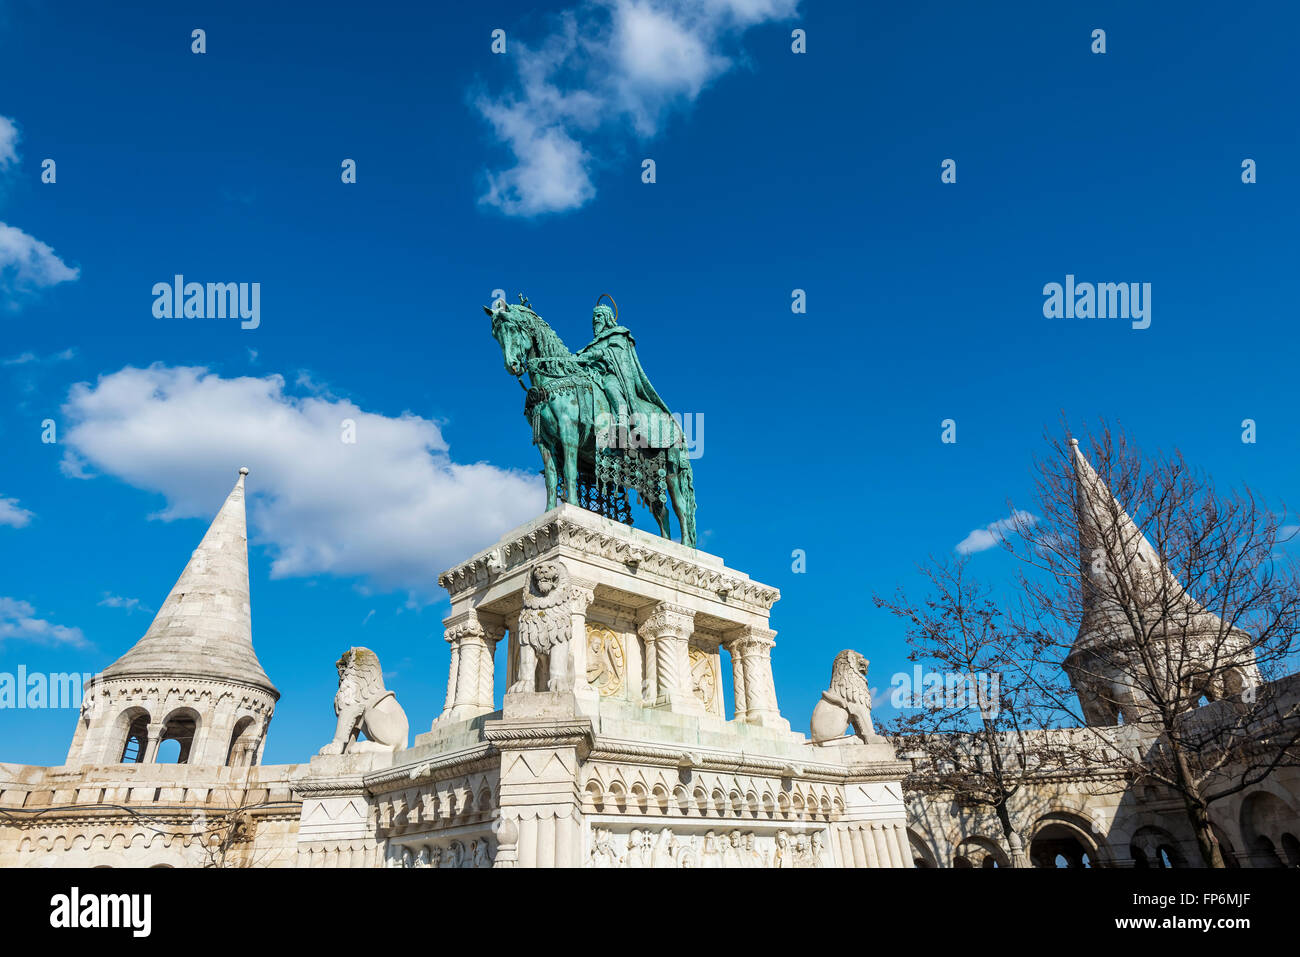 Statue of King Stephen at Fisherman Bastion - Stock Image